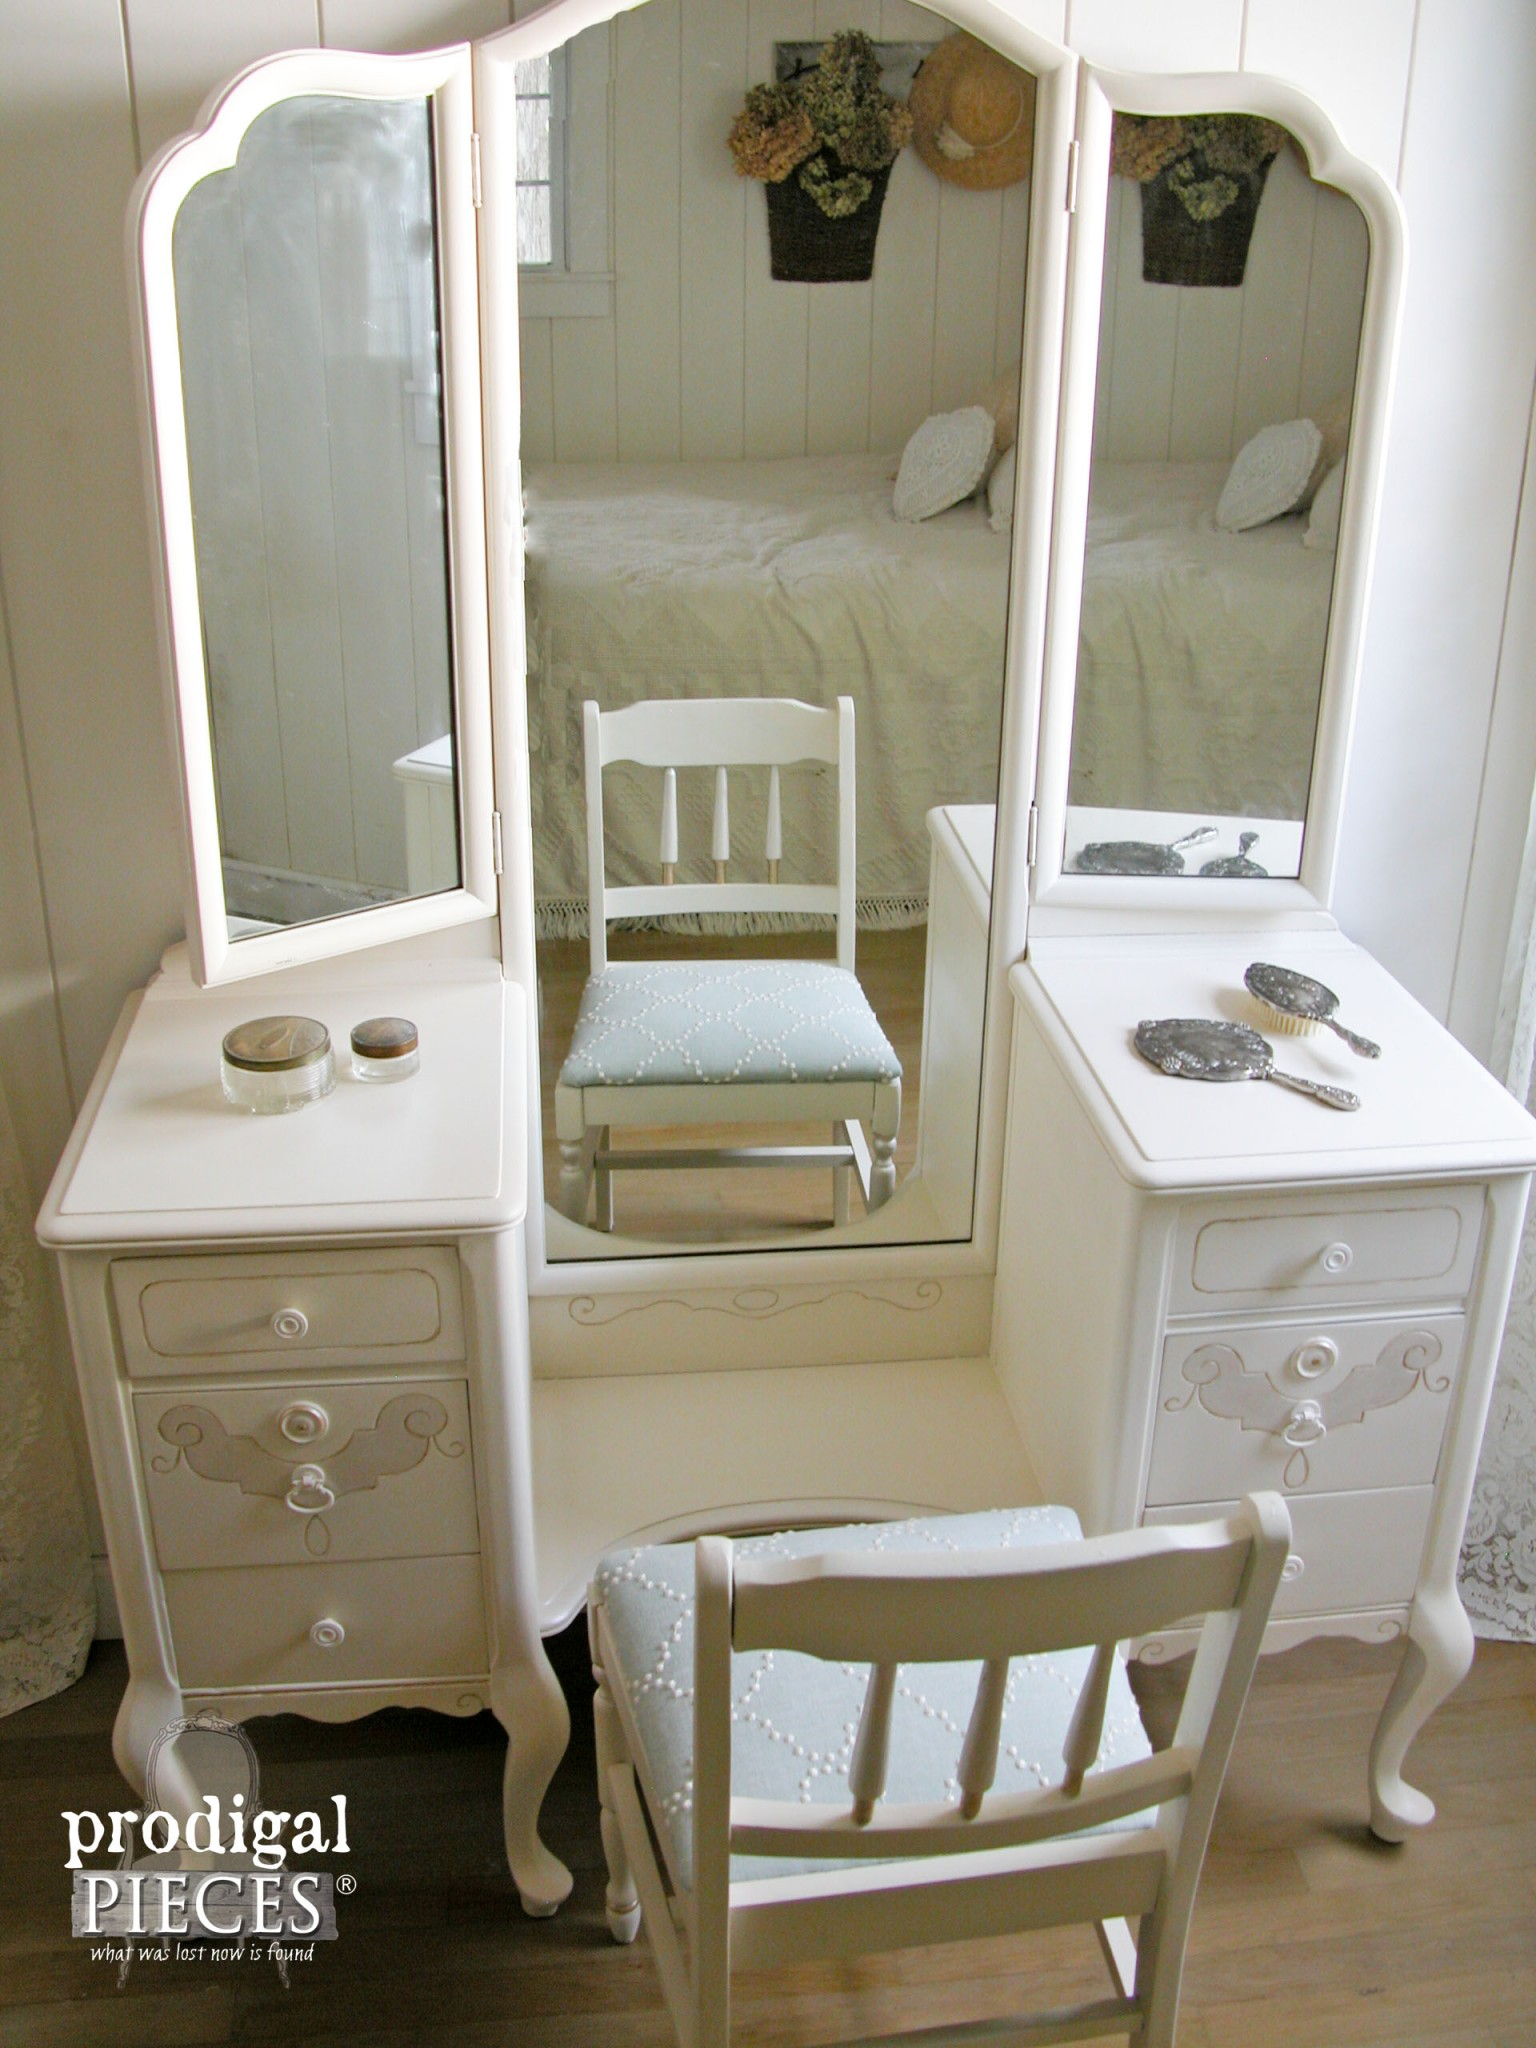 Top View of Custom Vanity by Prodigal Pieces | www.prodigalpieces.com